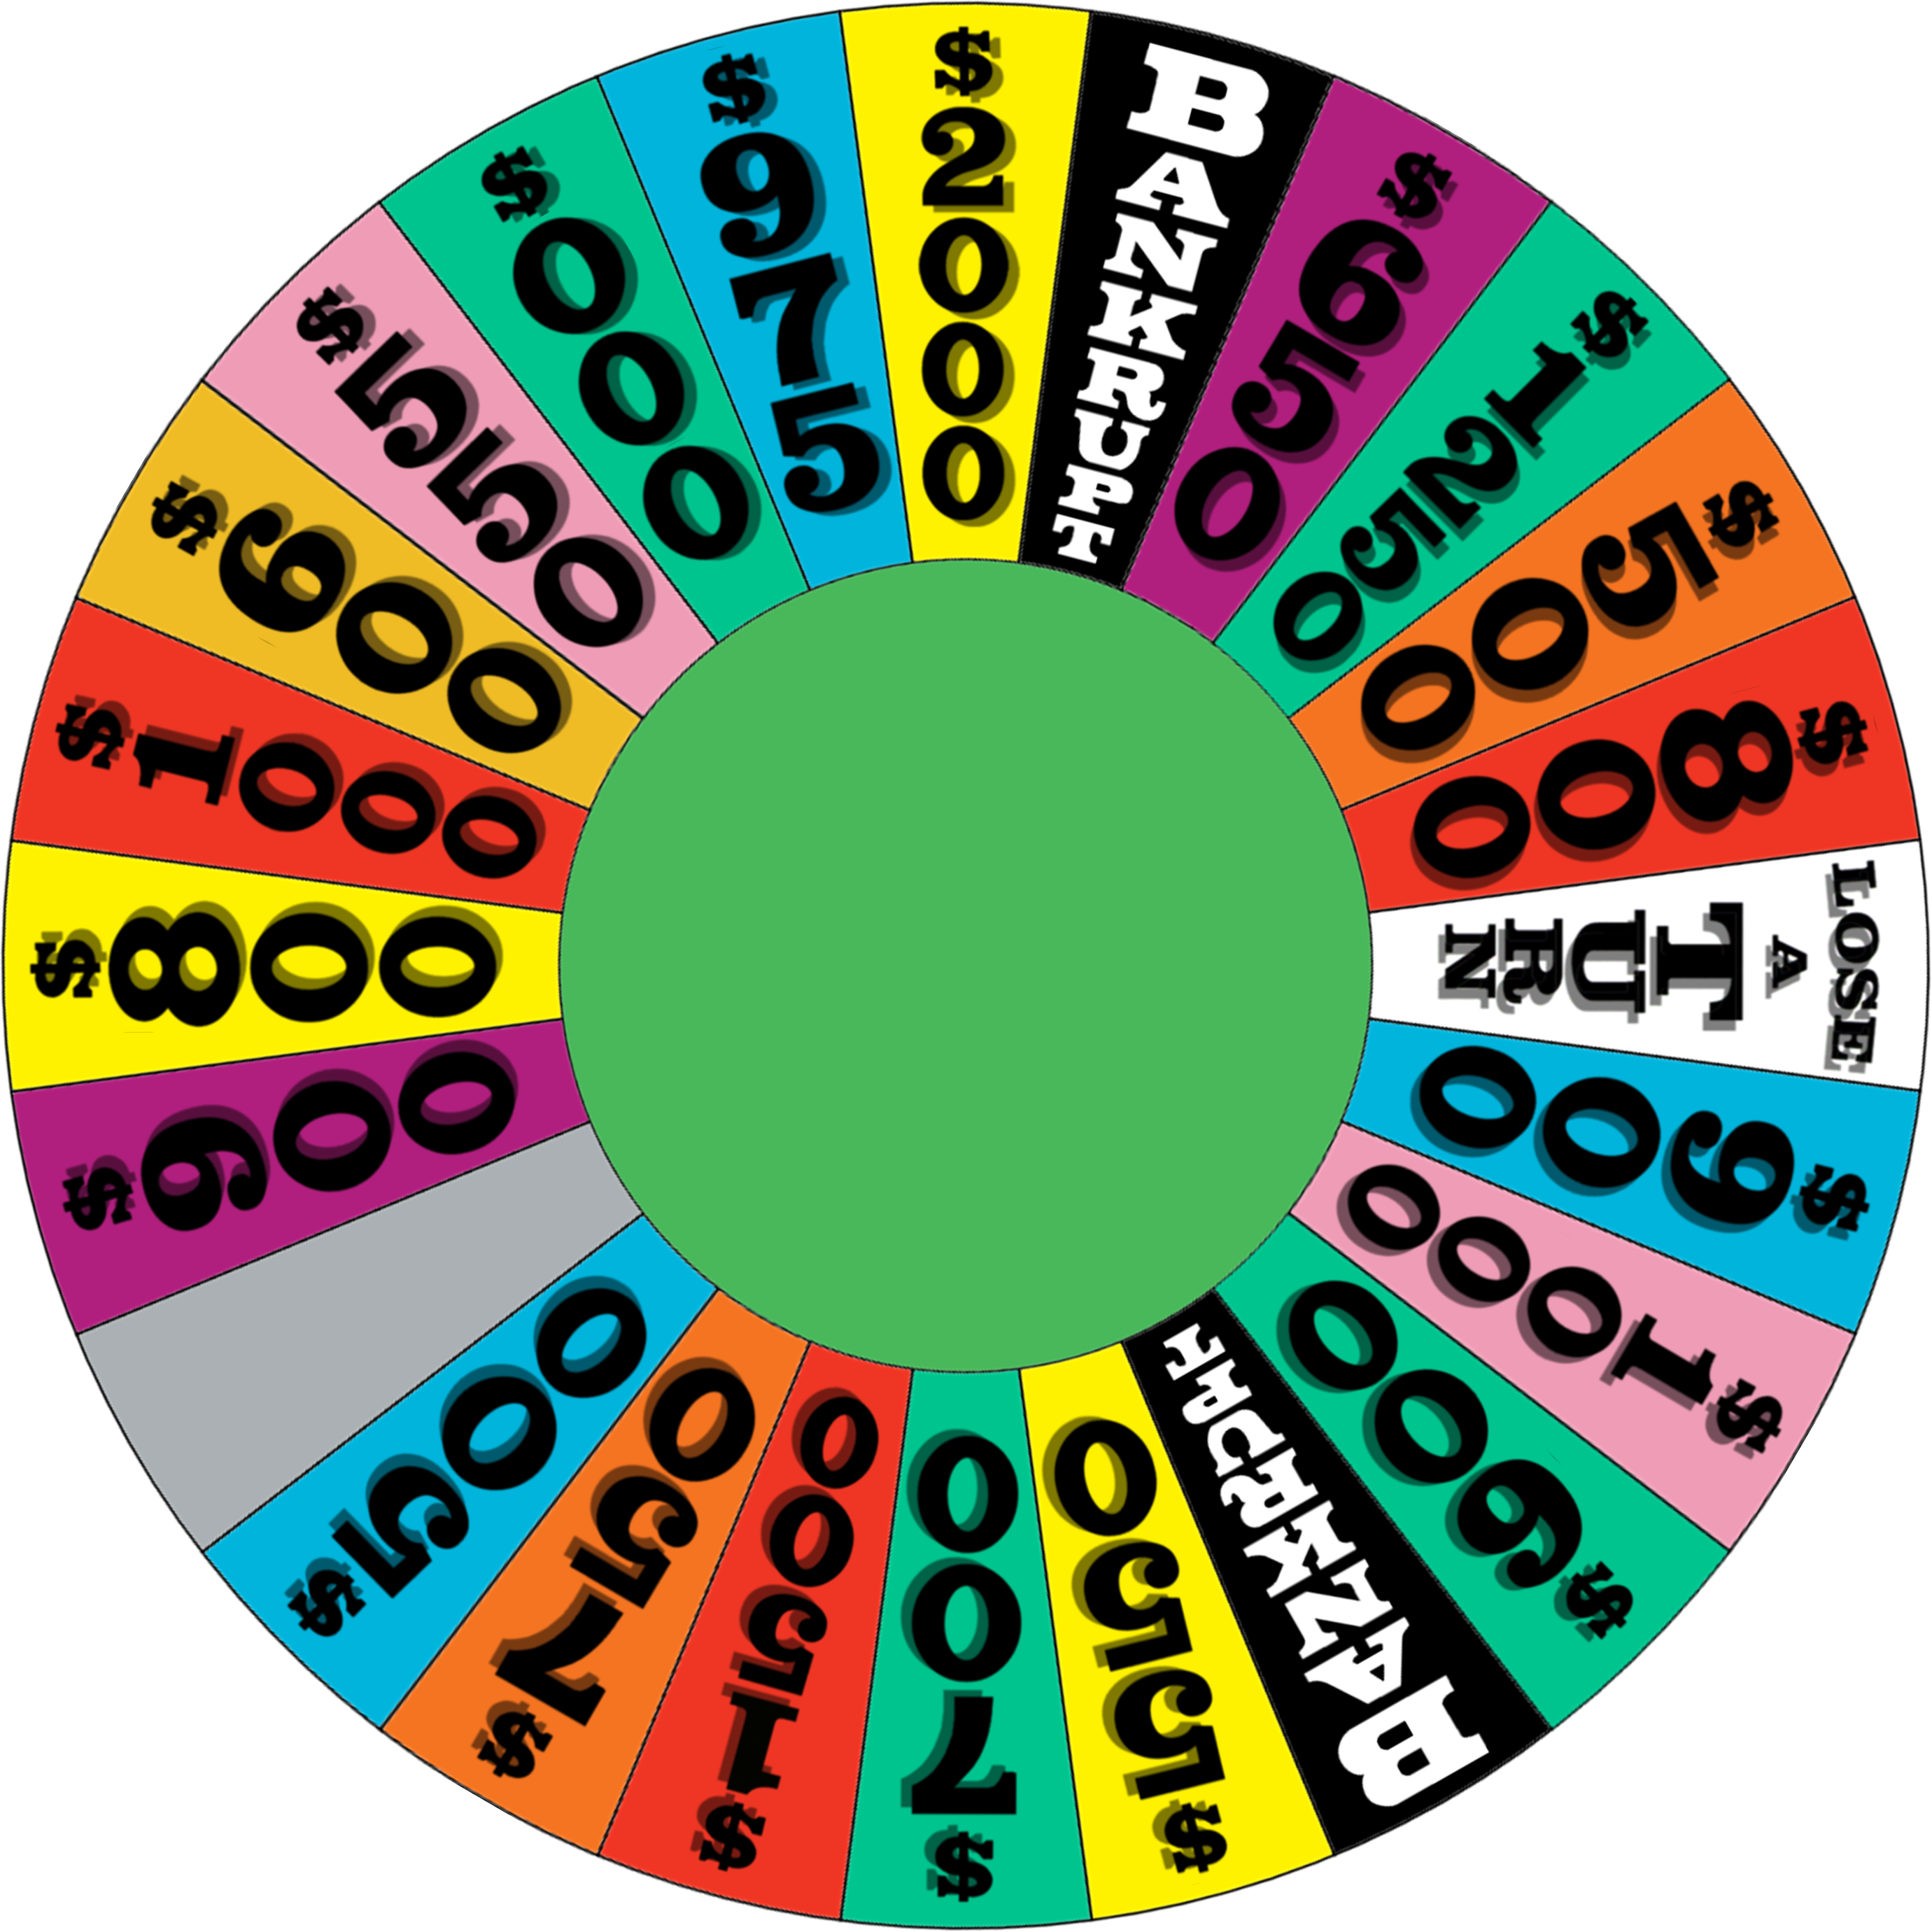 Kyle S Wheel Of Fortune Bare By Leafman813 On Deviantart